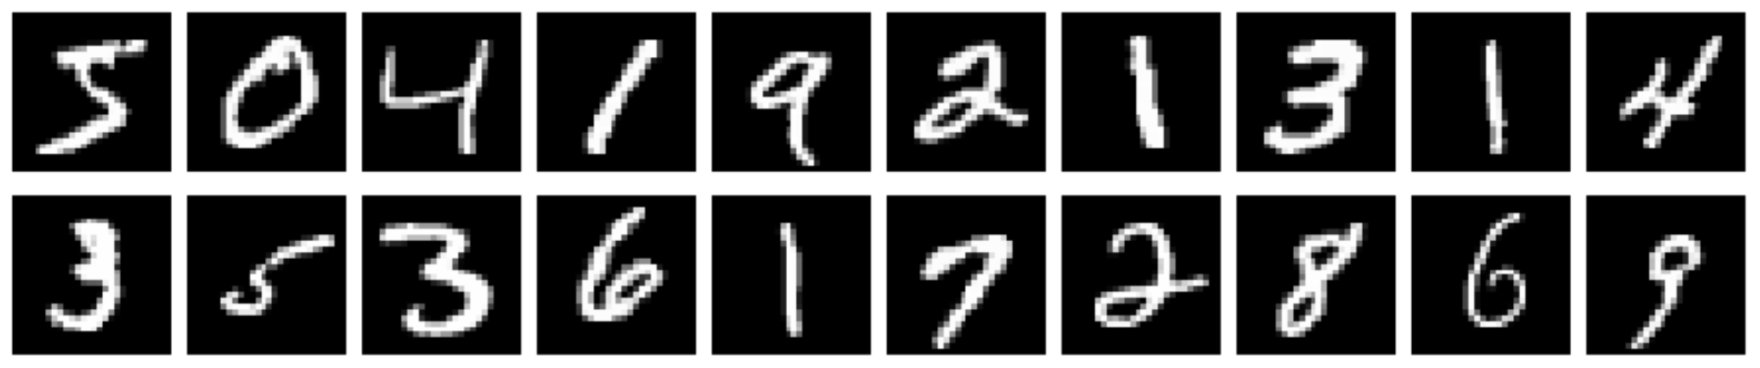 MNIST Images